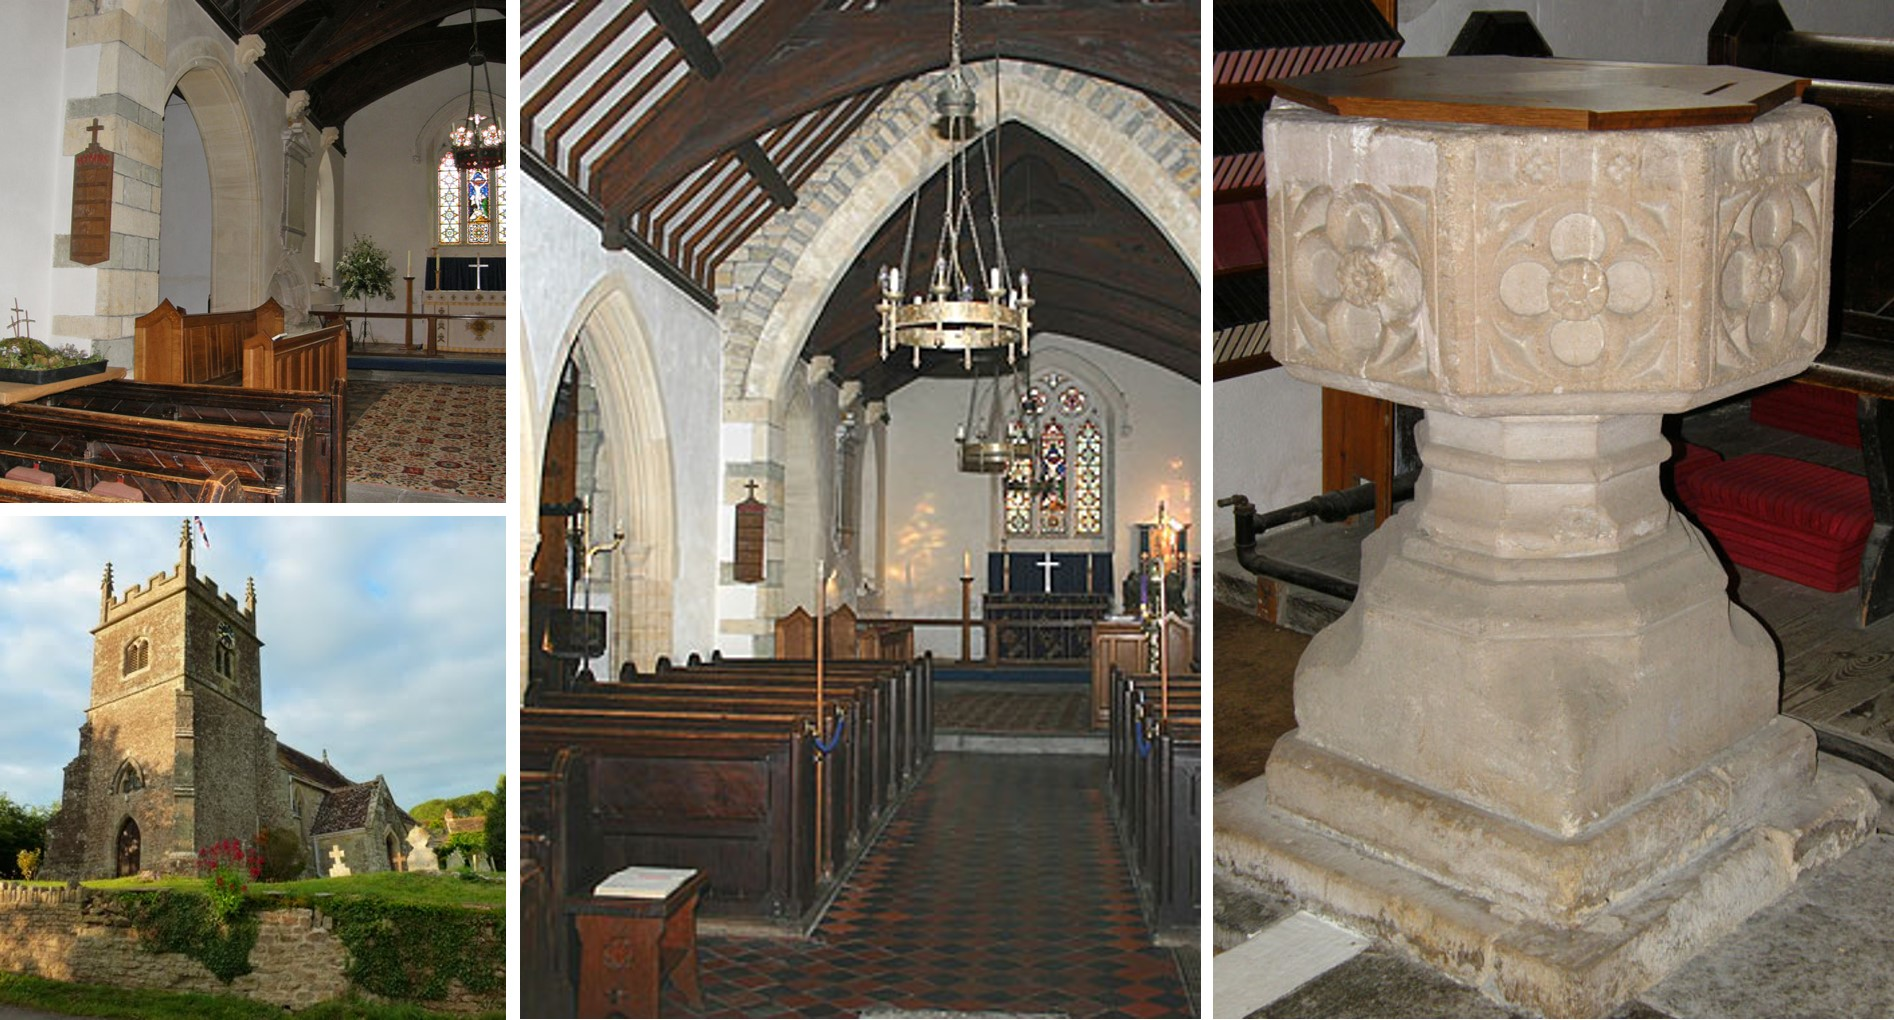 Four images of St John's church. Top left shows a view of the choir stalls and alter. Bottom left shows a view of the bell tower. Centre shows a view of the congregation and alter. Right shows a view of the ancient font.